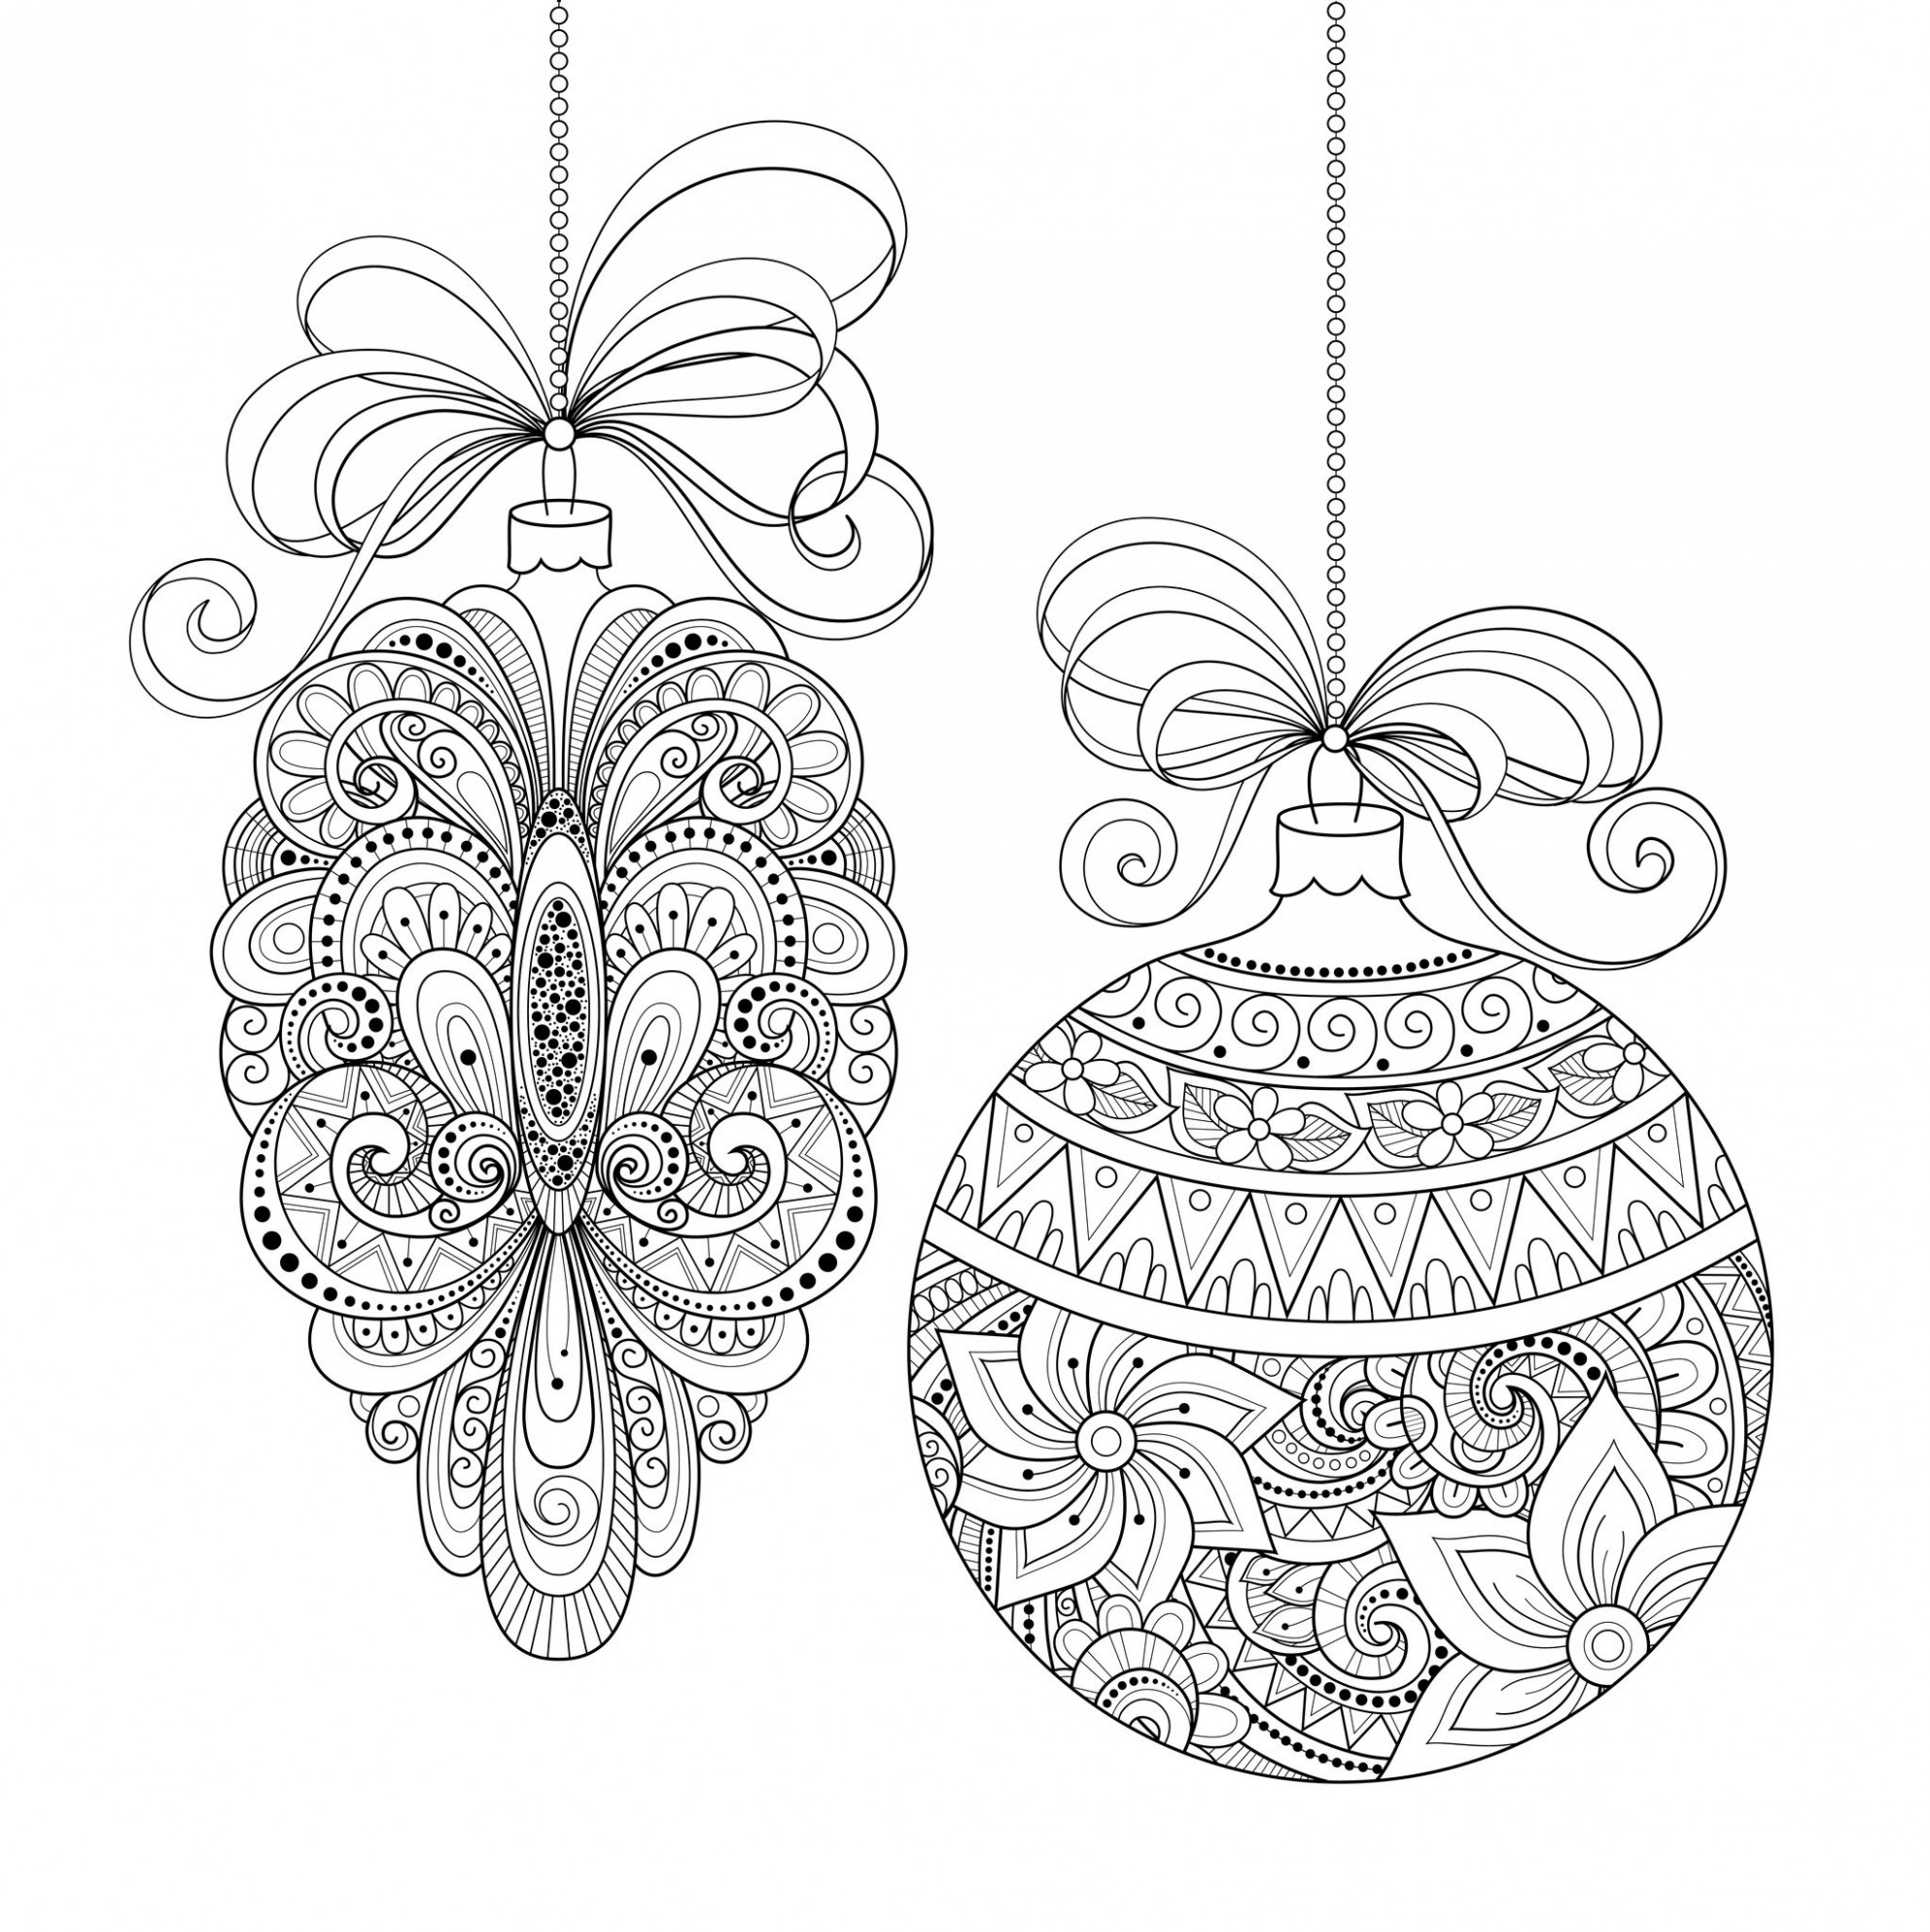 Christmas ornaments – Christmas Adult Coloring Pages – Christmas Coloring Ornaments